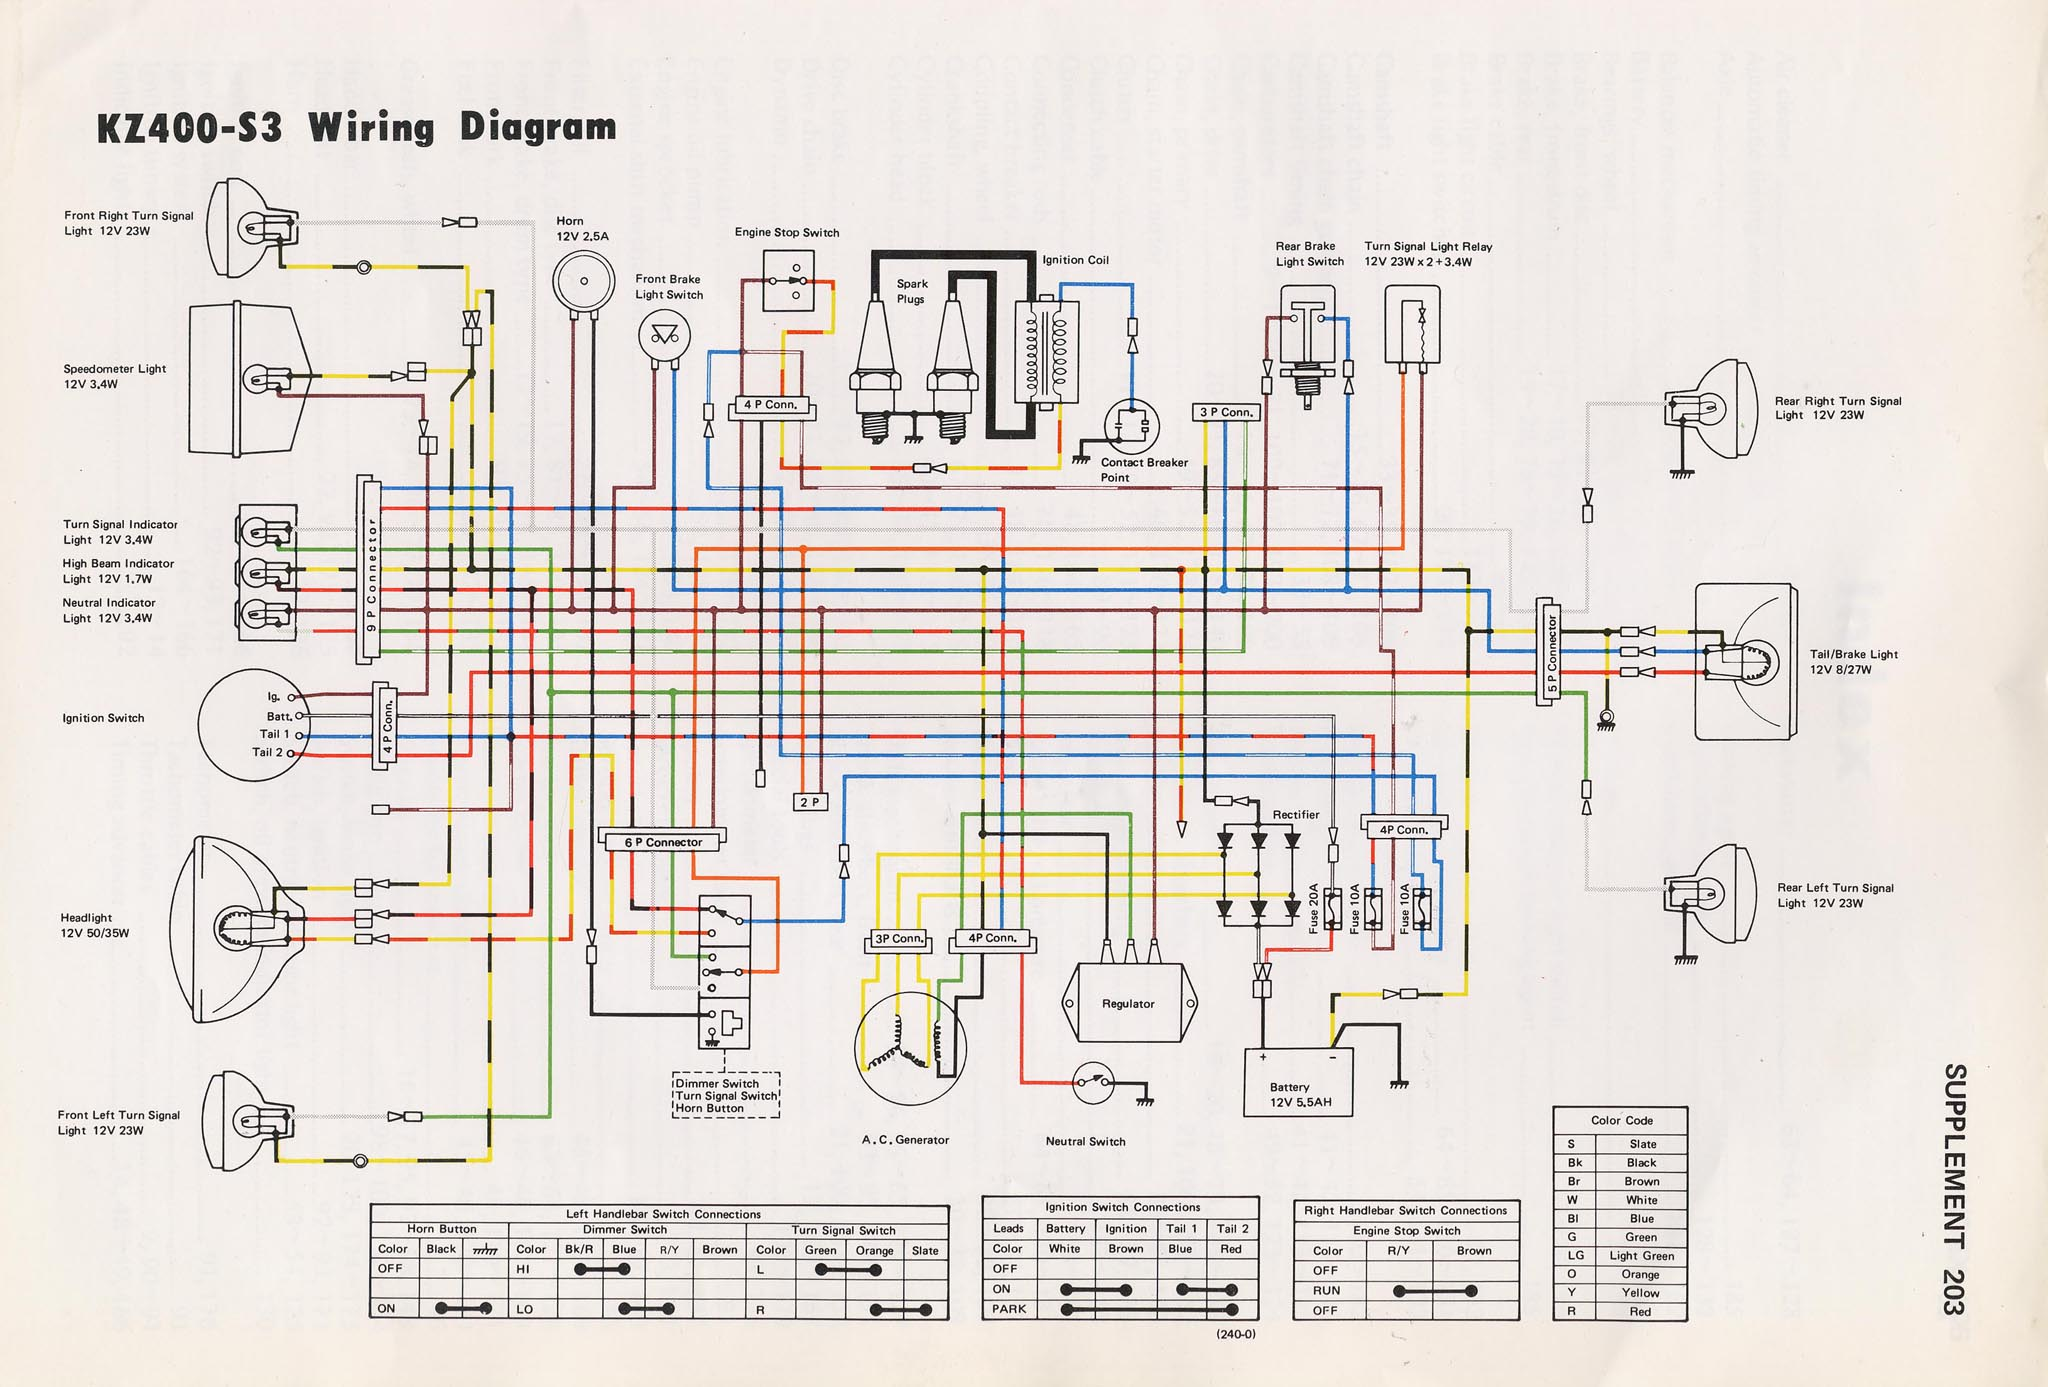 Ke175 Wire Diagram Smart Wiring Diagrams 1975 Kawasaki Enduro Schematic Kz400 Diy U2022 Rh Curlybracket Co Ke 175